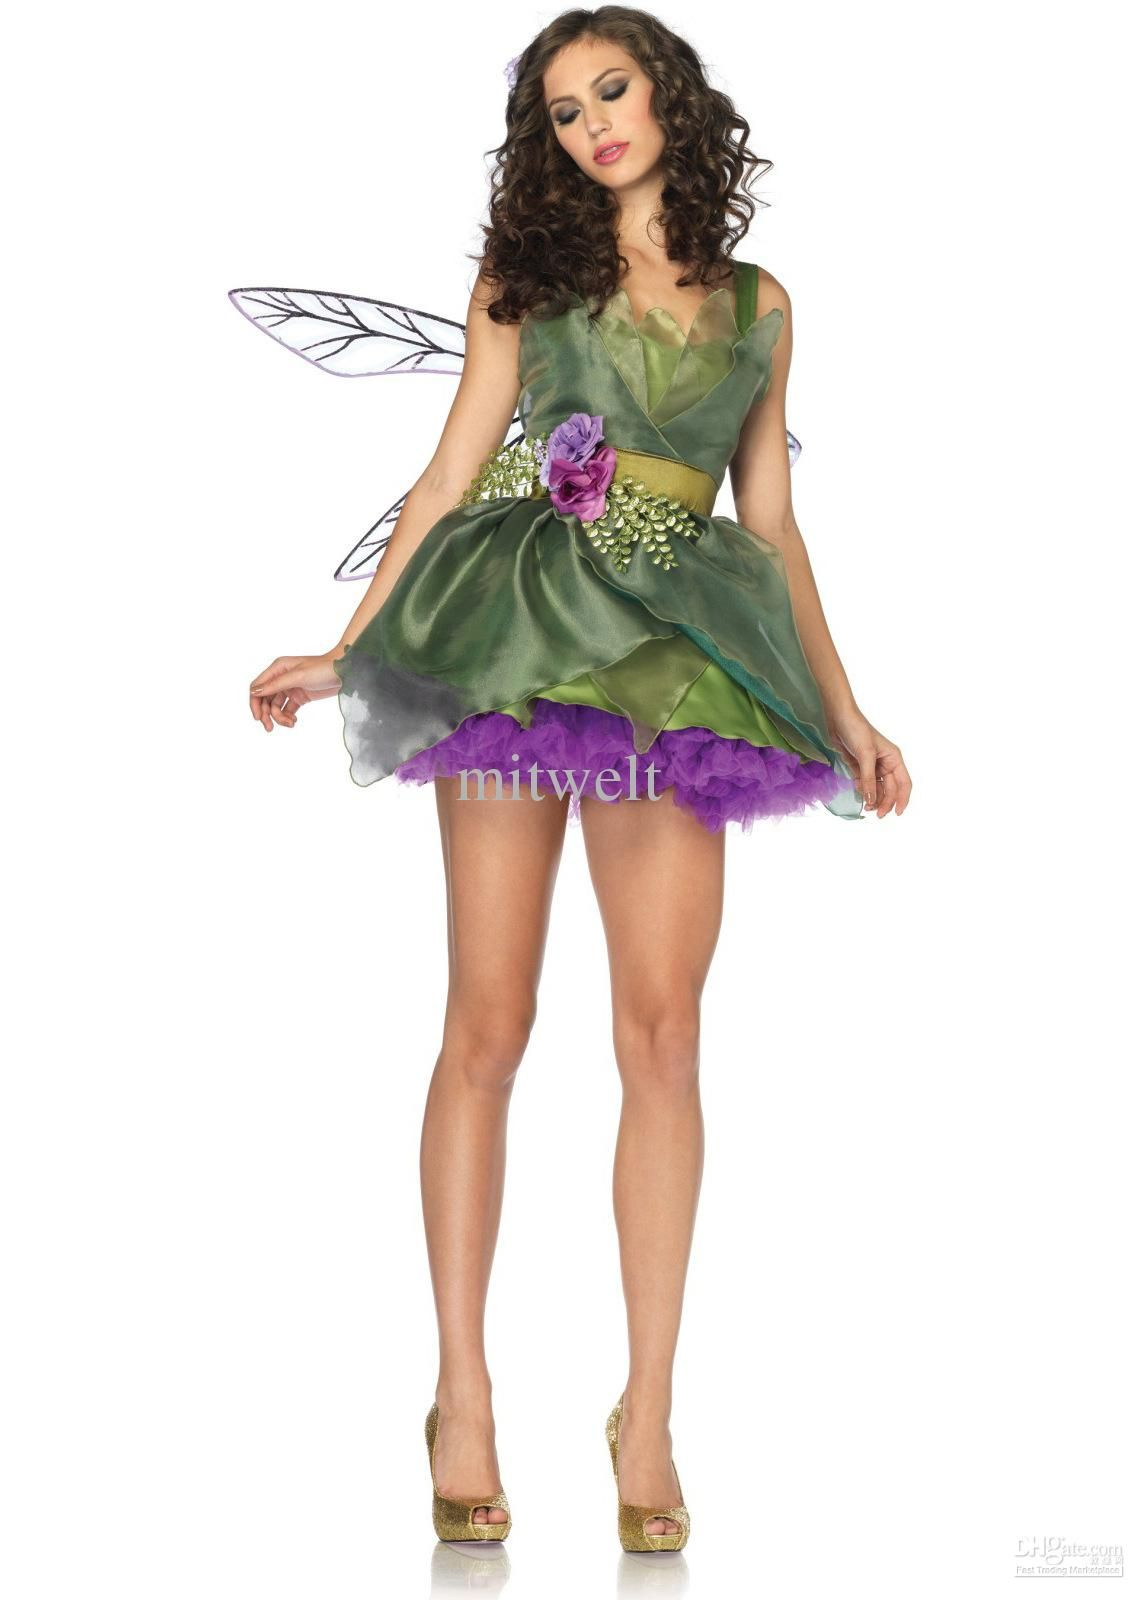 Wholesale Theme Costume - Buy Christmas Elf Costume Dress Green Flower Fairy Angel Animal Cosplay Dress Clothes Clothing Role-playing, $58.0 | DHgate